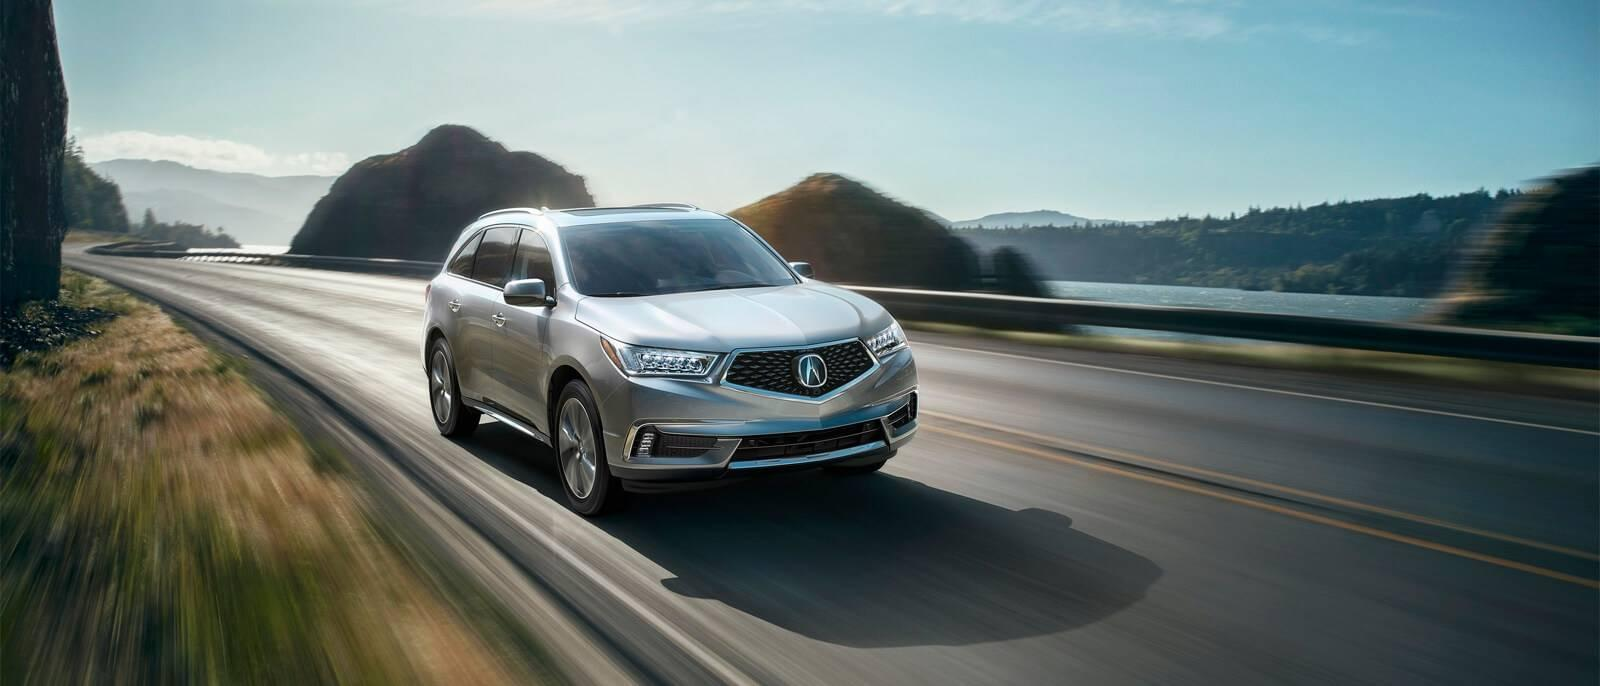 What Are The Perks Of Leasing A Vehicle Acura Of Avon - Lease an acura mdx